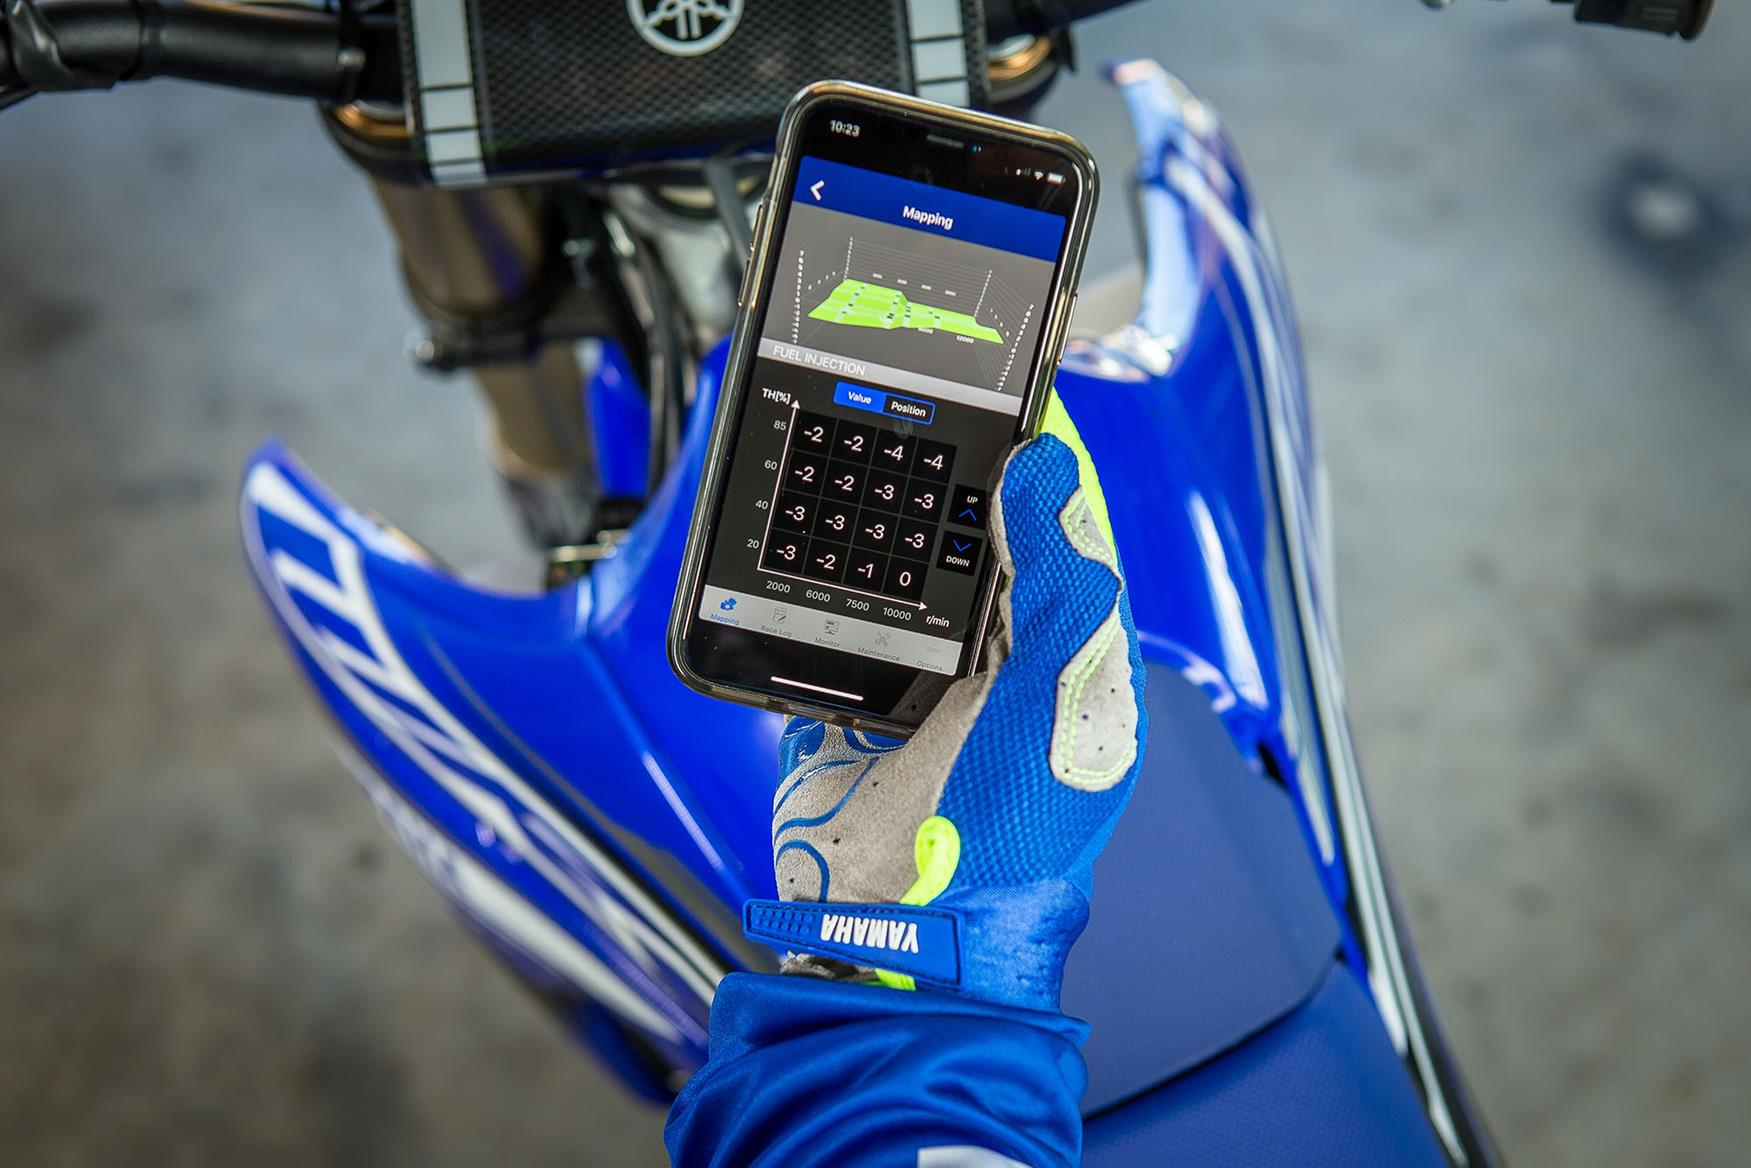 Engine mapping can be altered using a smartphone app with the race kit